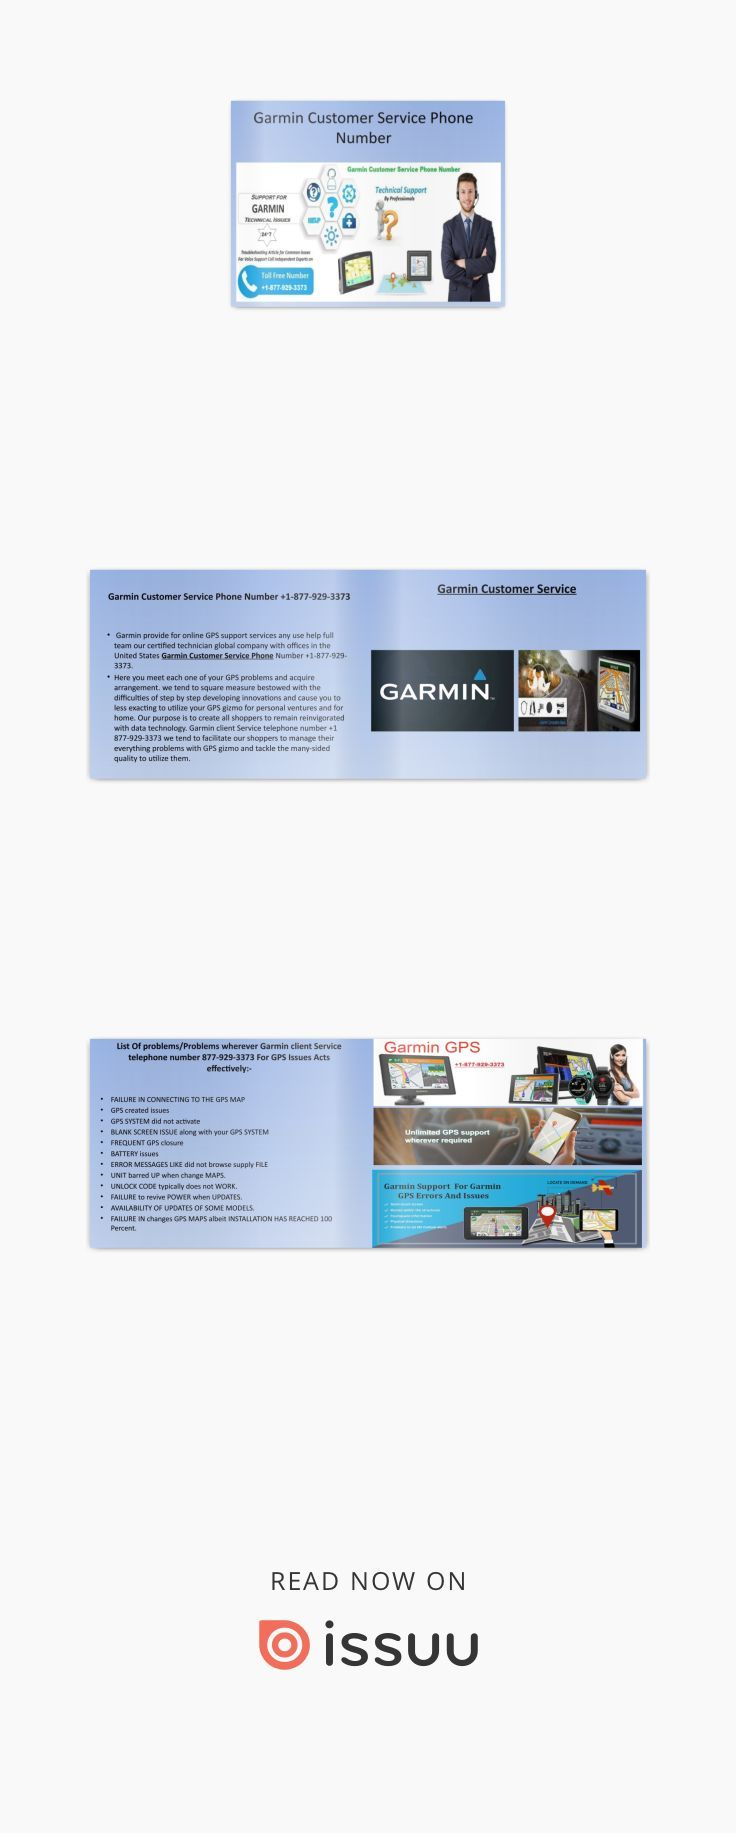 Garmin Customer Service Phone Number in 2019 | GARMIN CUSTOMER